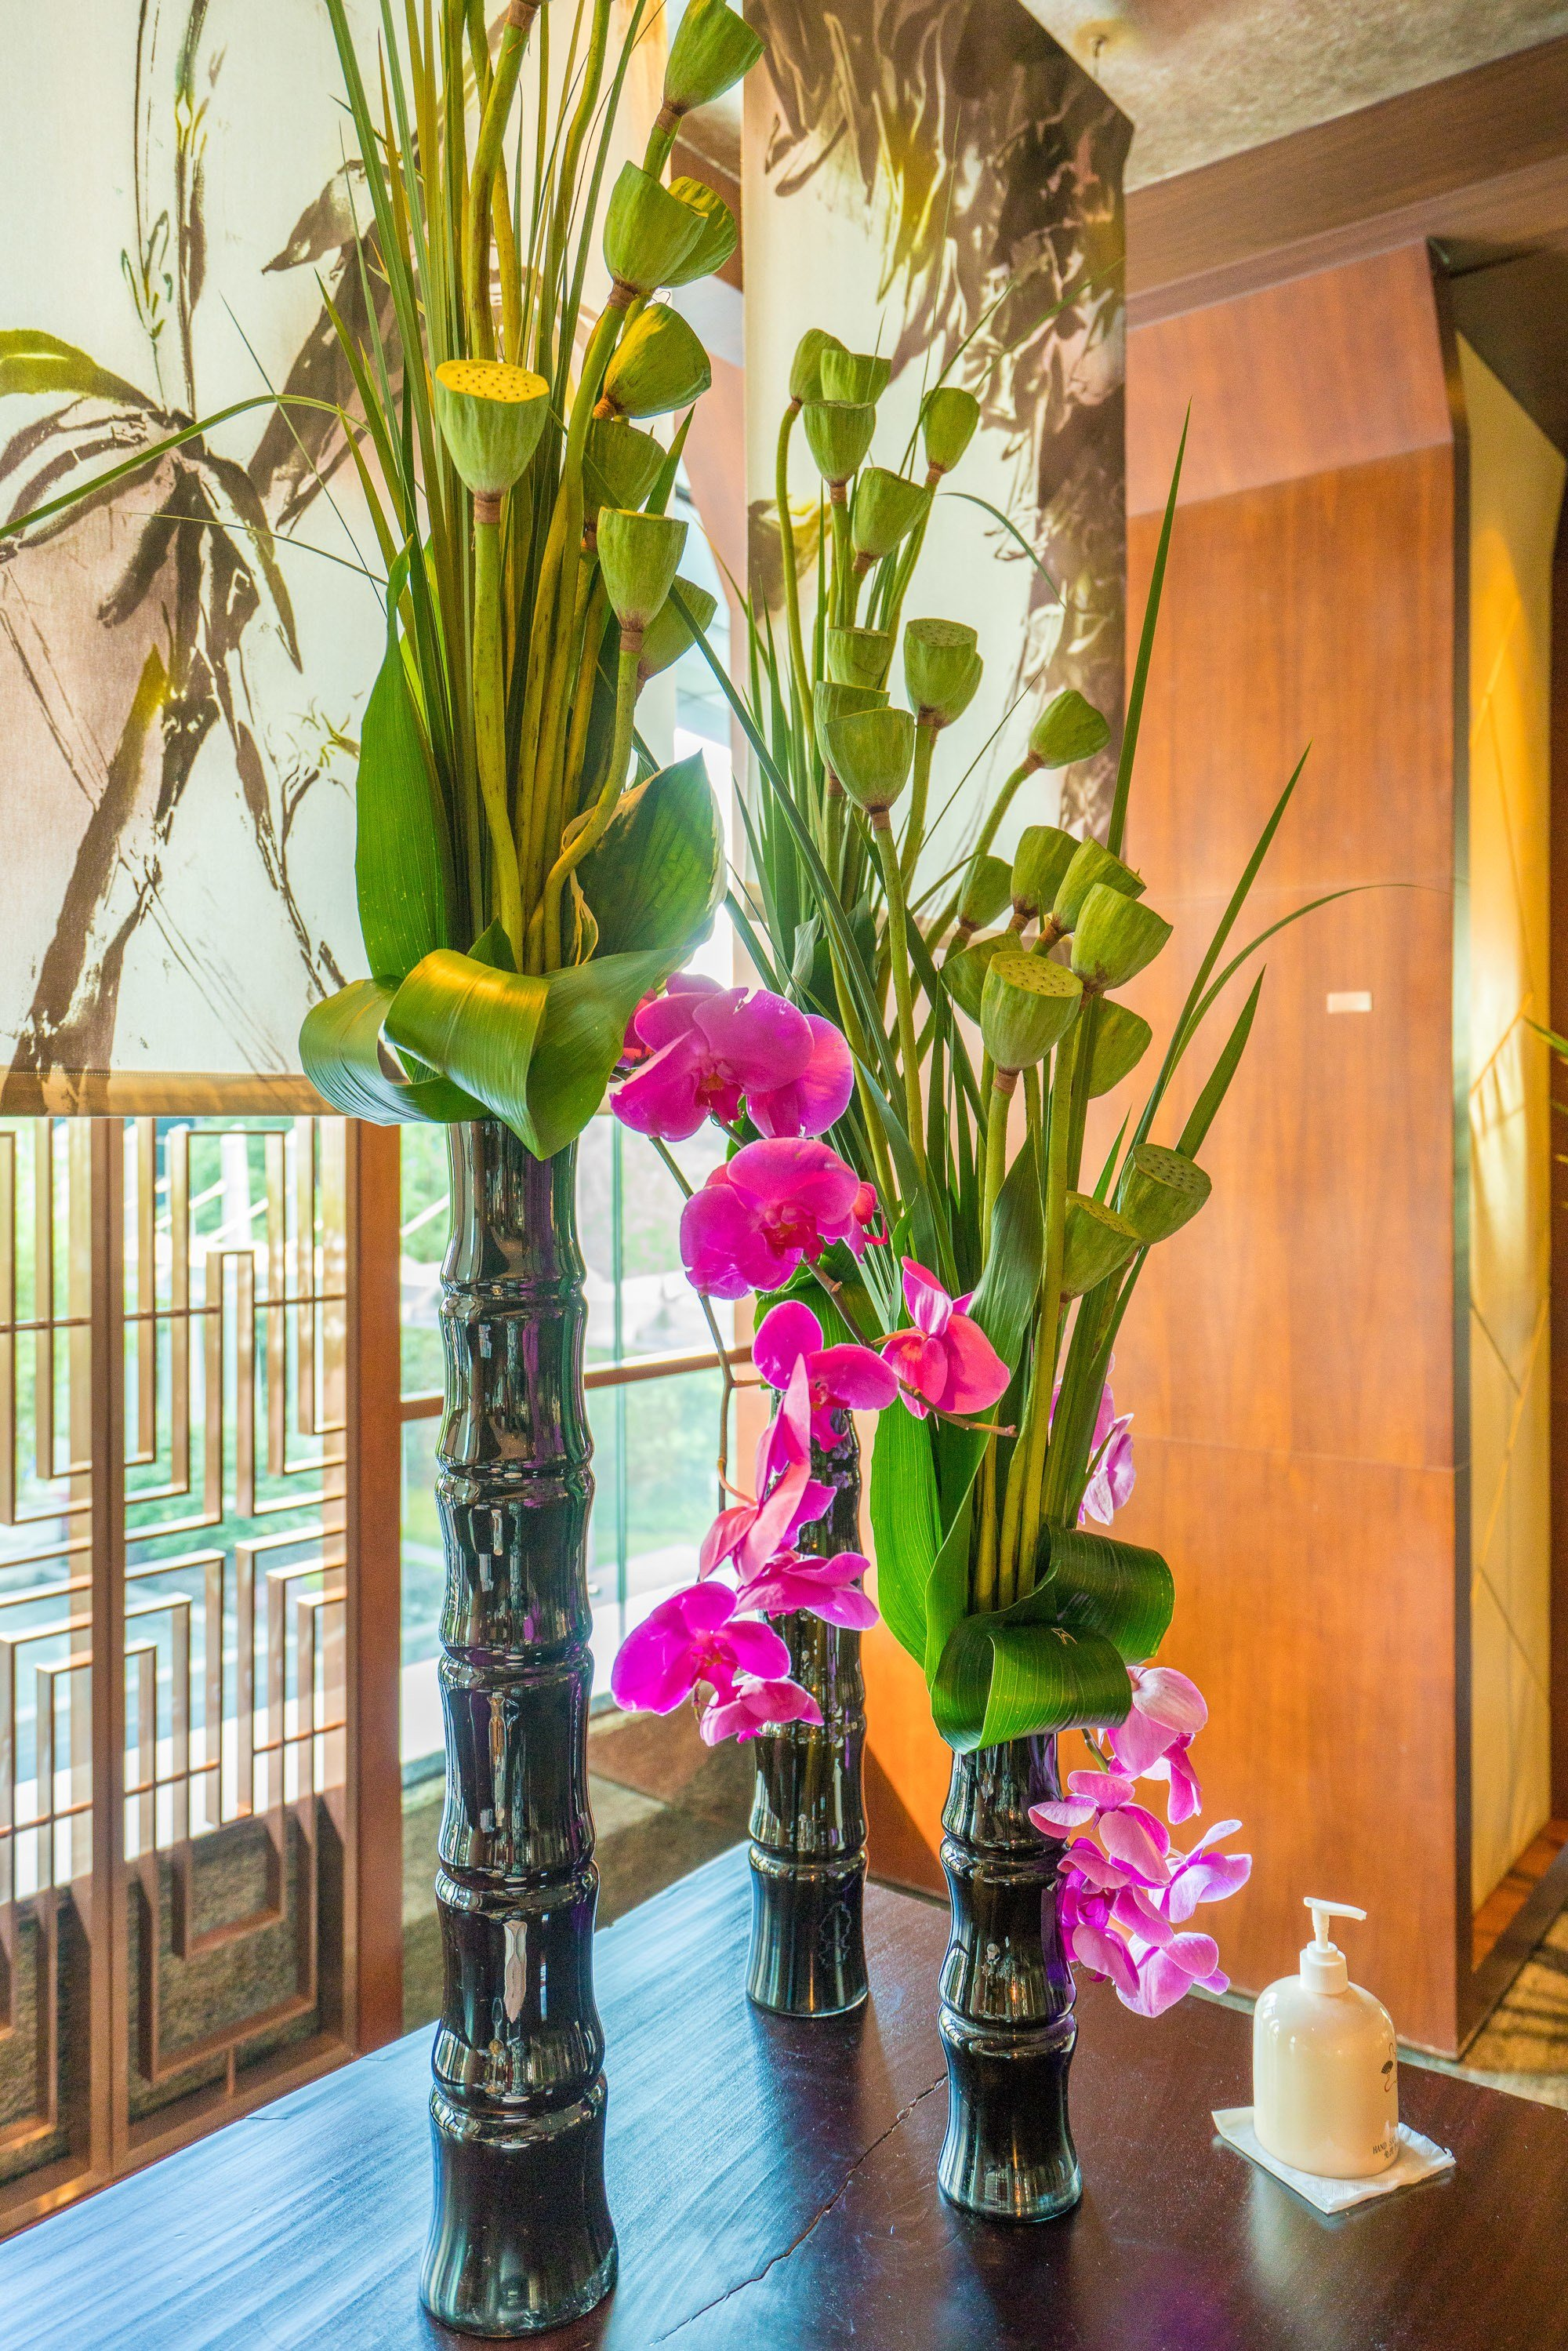 Orchids in a Club Lounge arrangement at Mandarin Oriental Pudong, Shanghai.